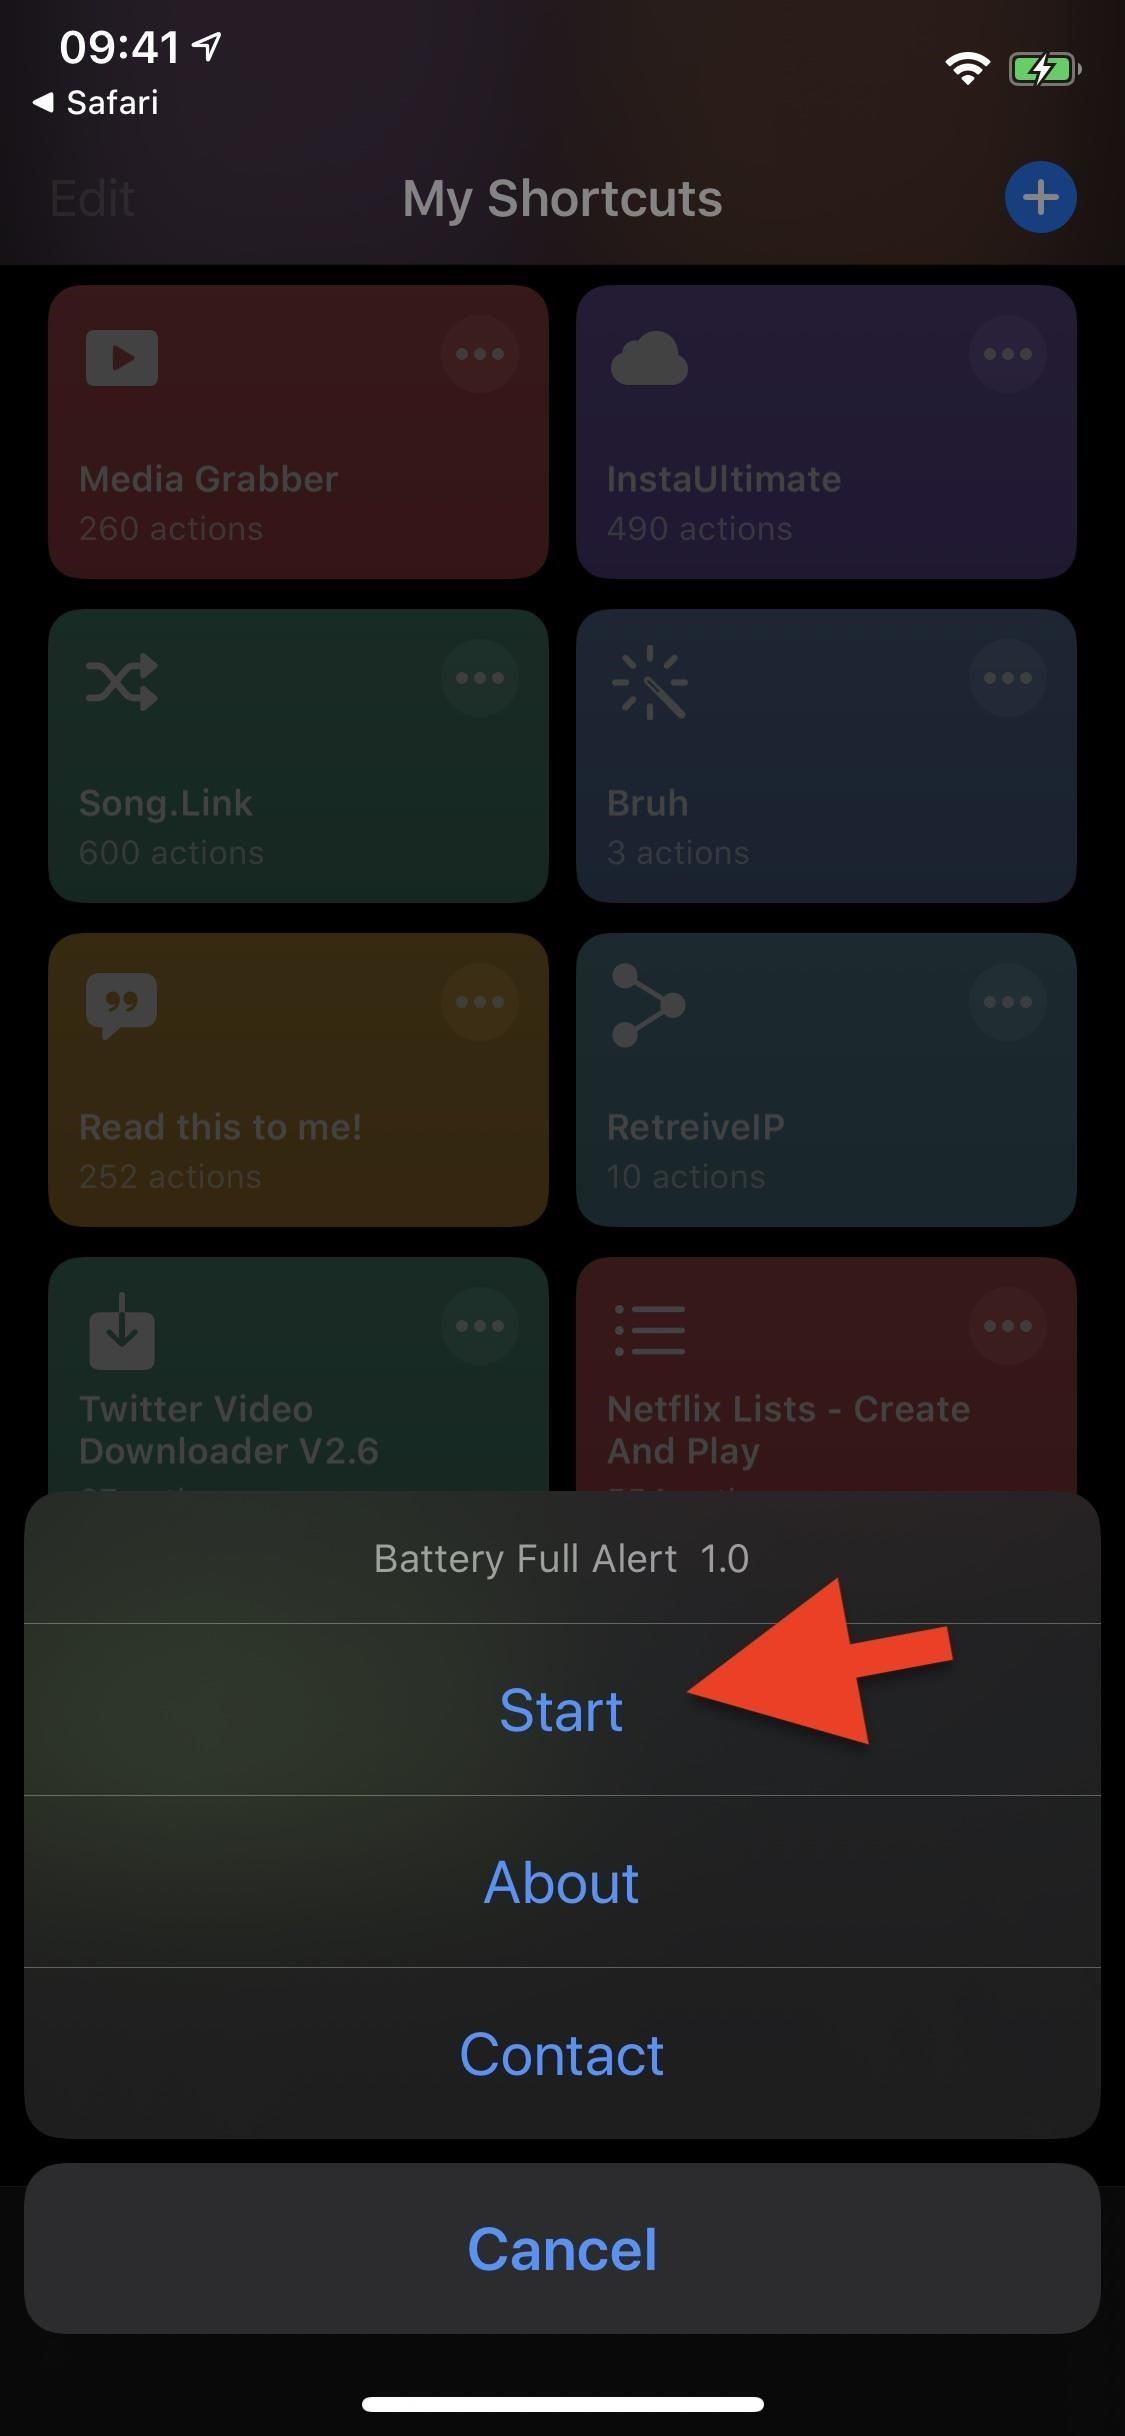 Set an Alarm on Your iPhone for When Your Battery Reaches Full Charge